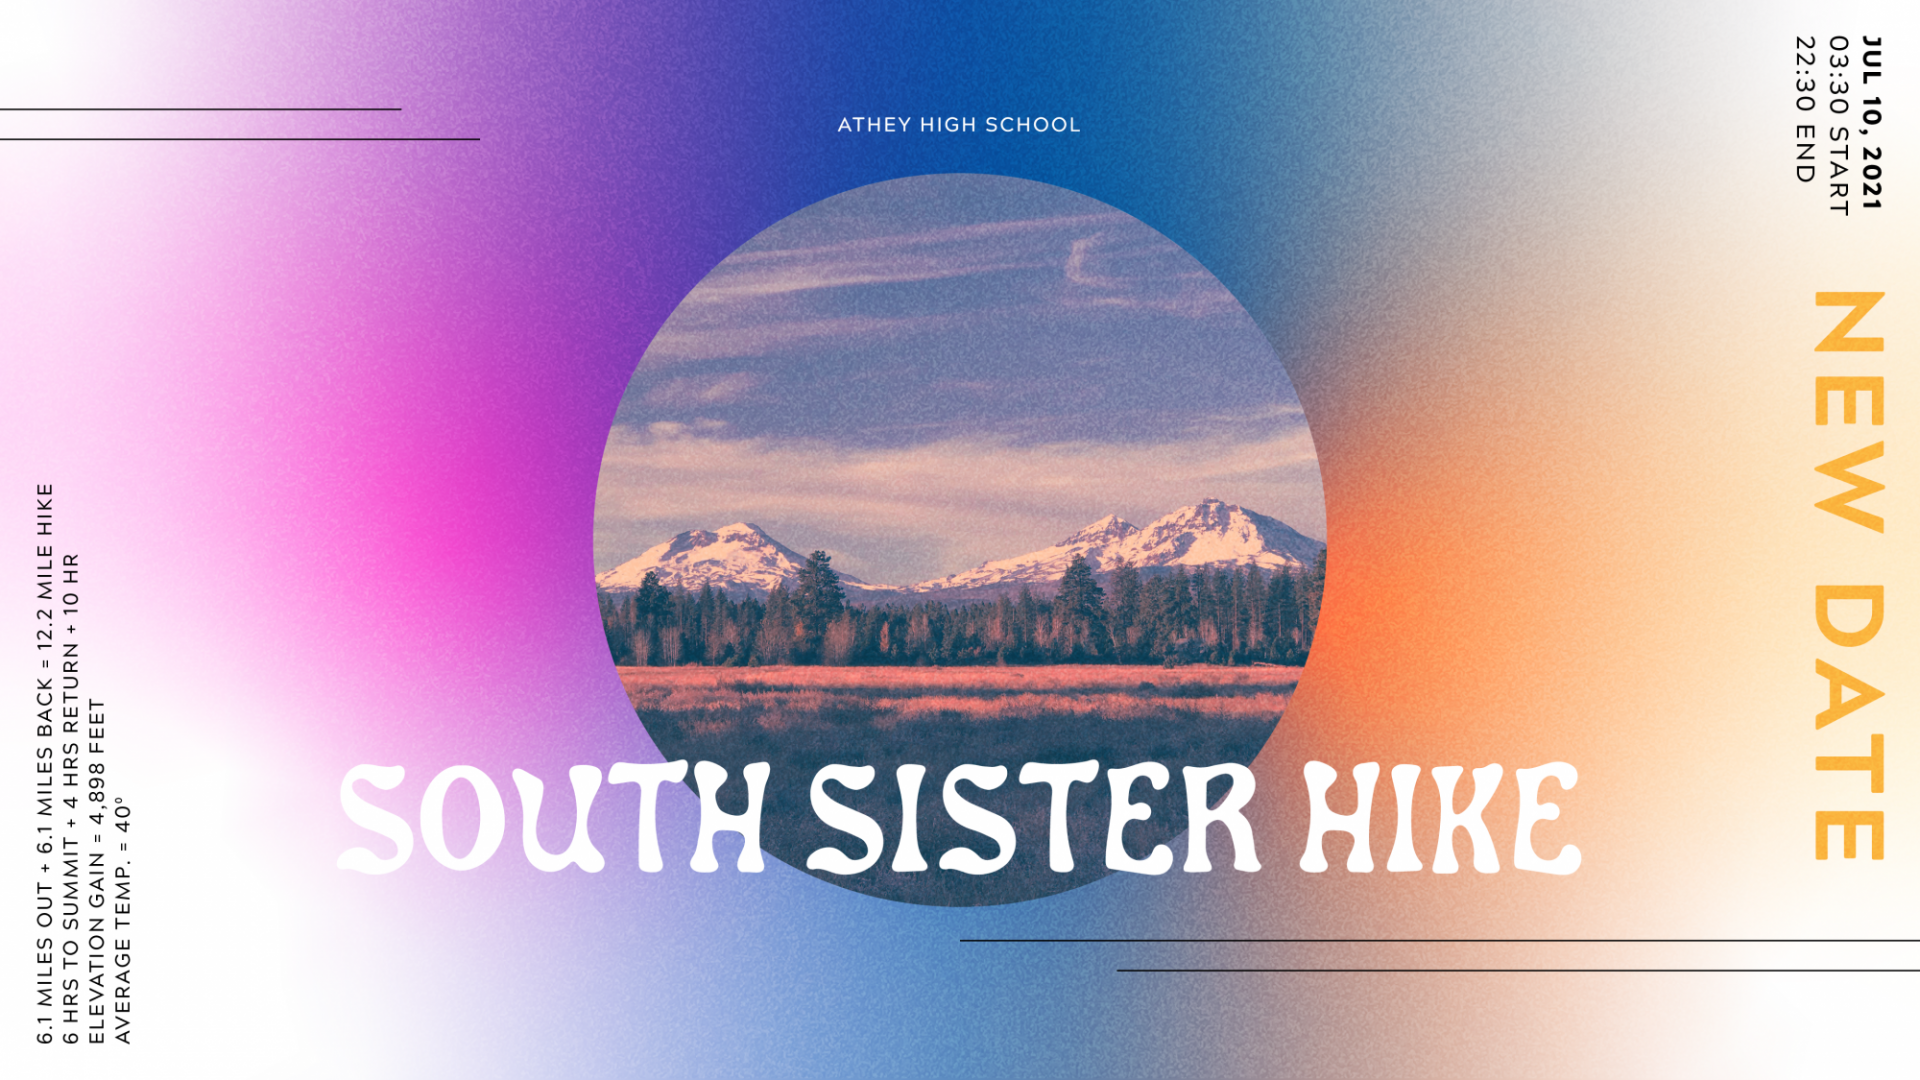 Poster for HS South Sister Hike